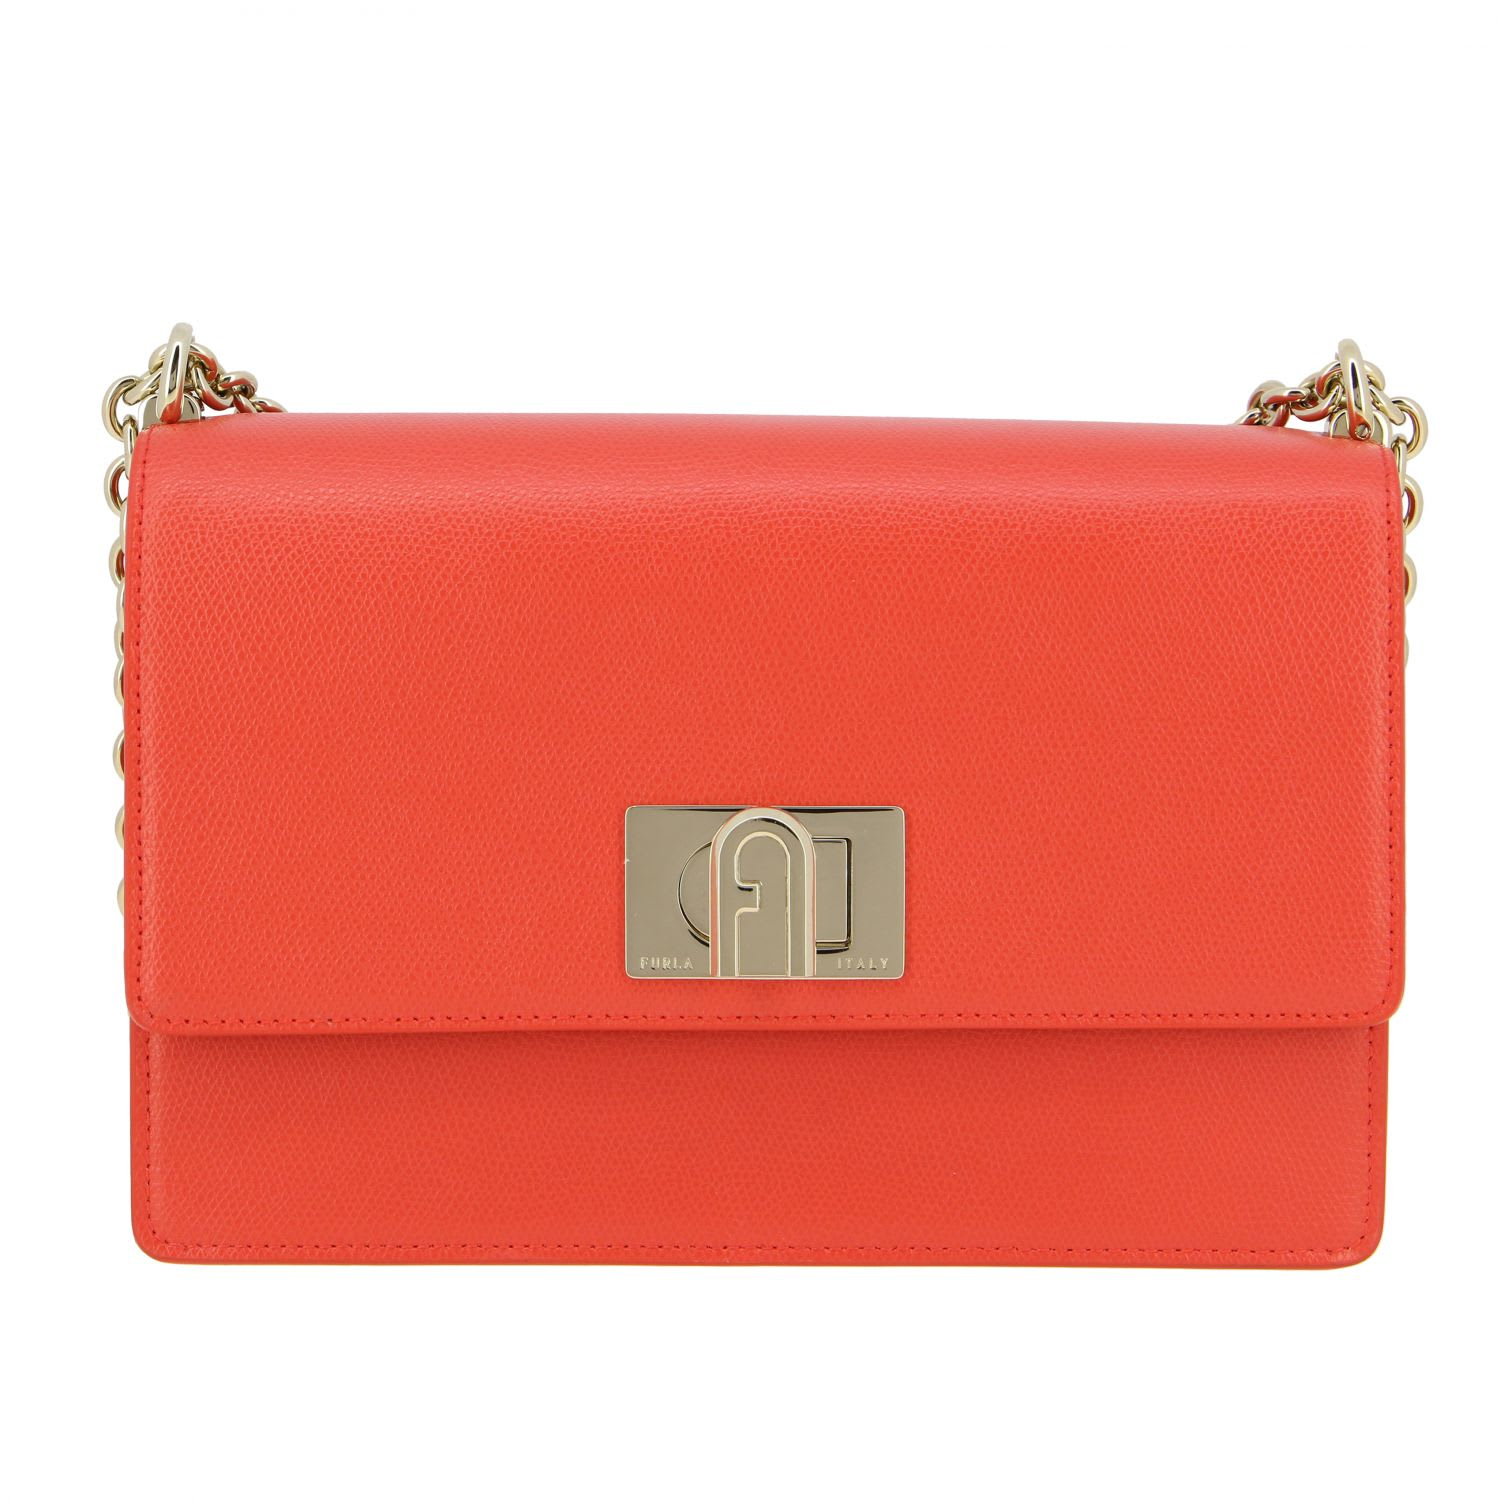 Furla 1927 Shoulder Bag In Textured Leather In Red